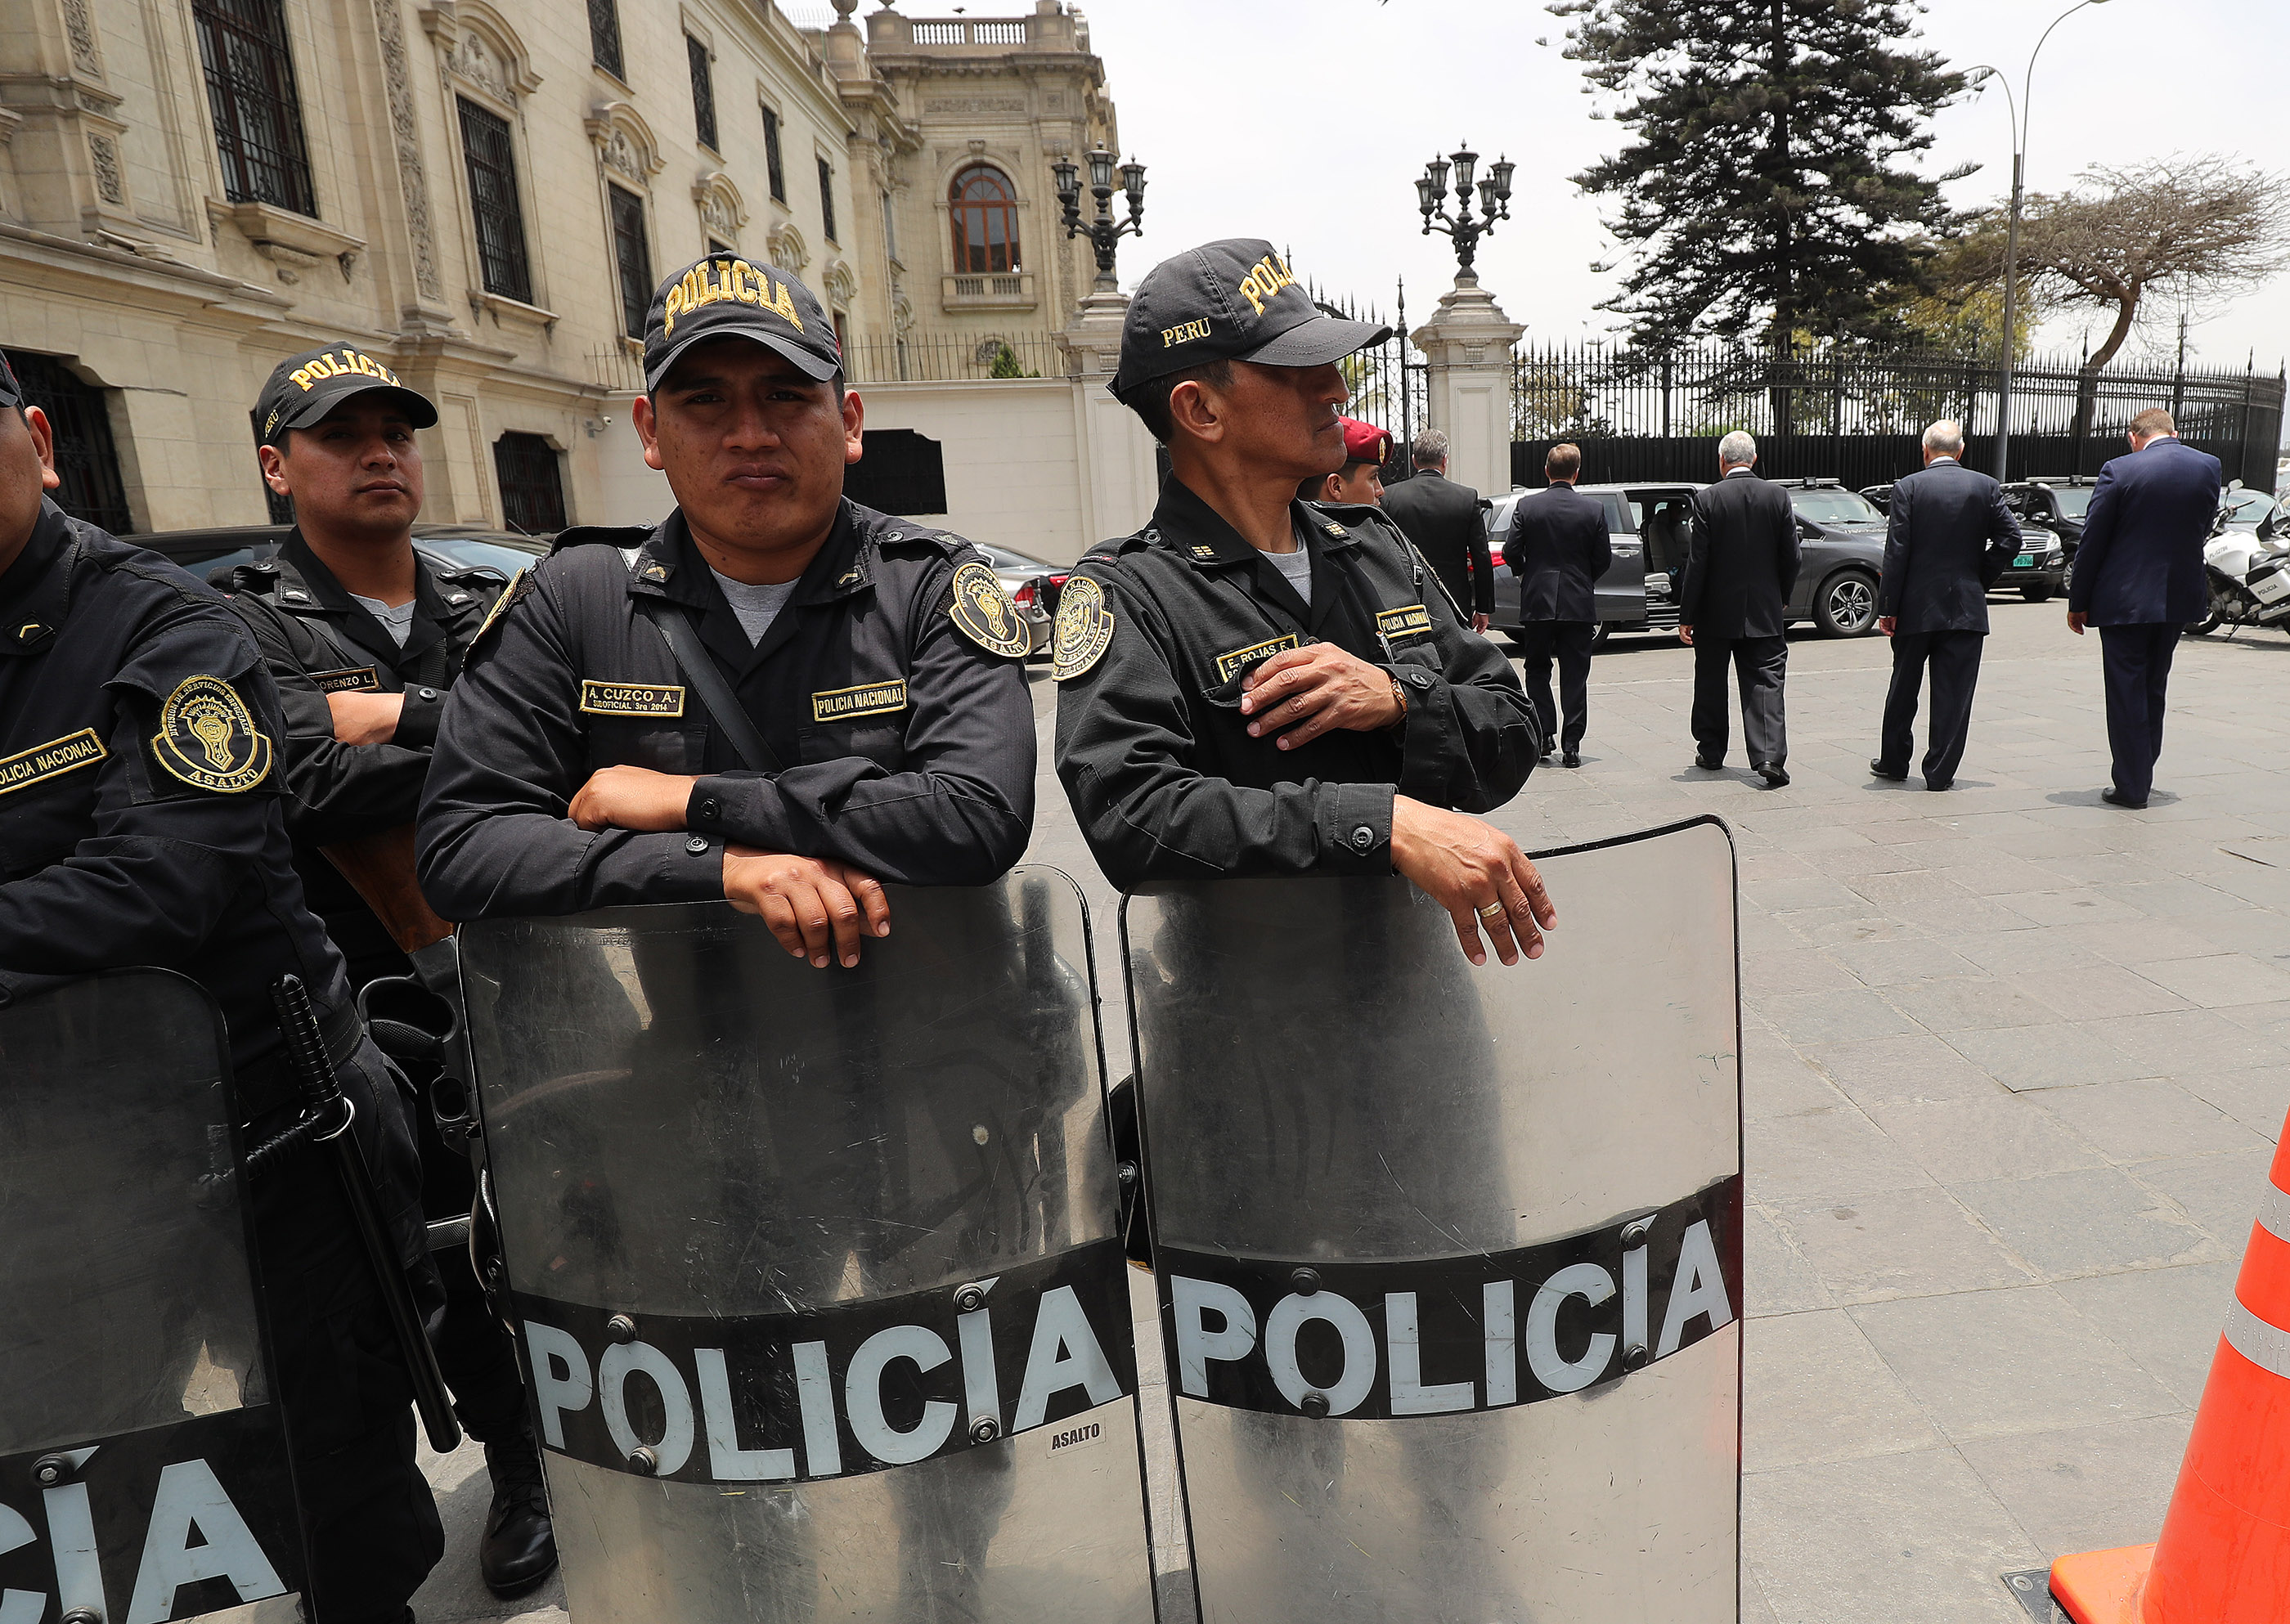 Police are present as President Russell M. Nelson of The Church of Jesus Christ of Latter-day Saints, center, Elder Gary E. Stevenson, of the Quorum of the Twelve Apostles, and Elder Enrique Falabella, General Authority Seventy, leave the Government Palace after speaking with the president of Peru in Lima, Peru, on Oct. 20, 2018.